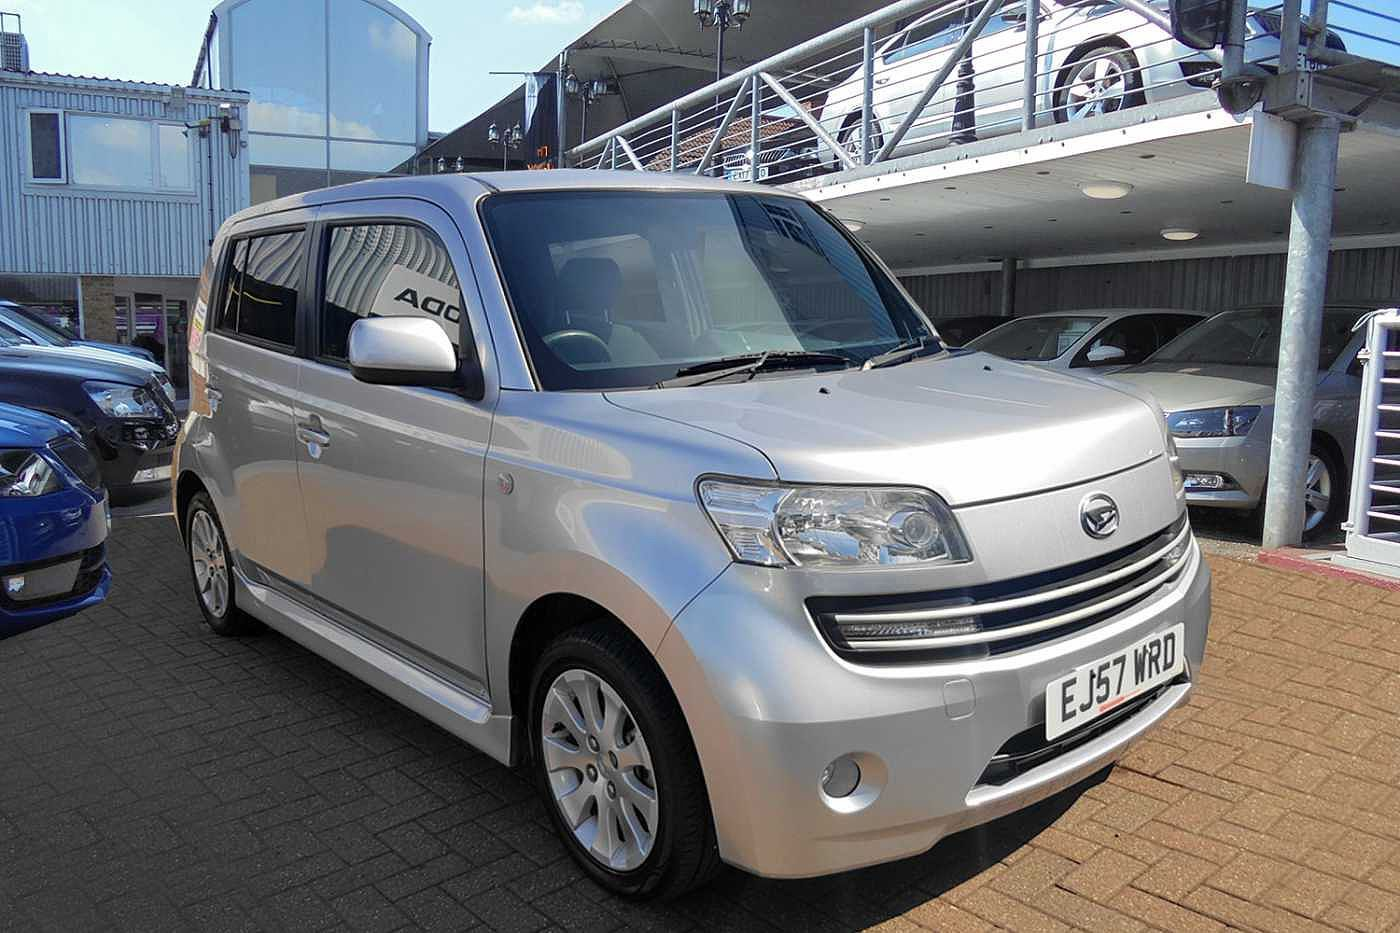 Daihatsu used cars for sale in UK on Auto Trader UK